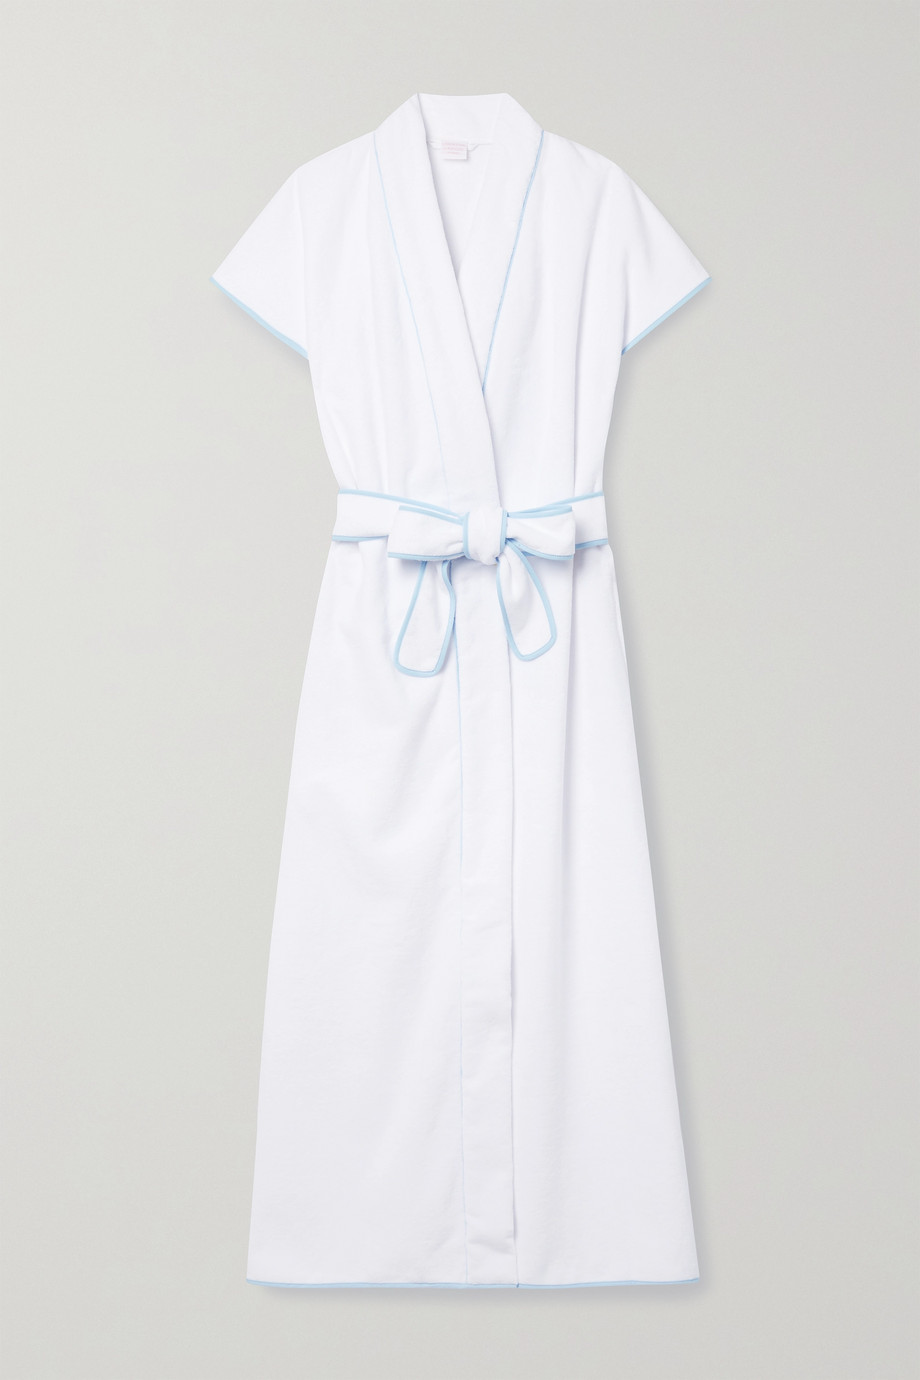 LORETTA CAPONI Lidia hooded embroidered cotton-terry robe